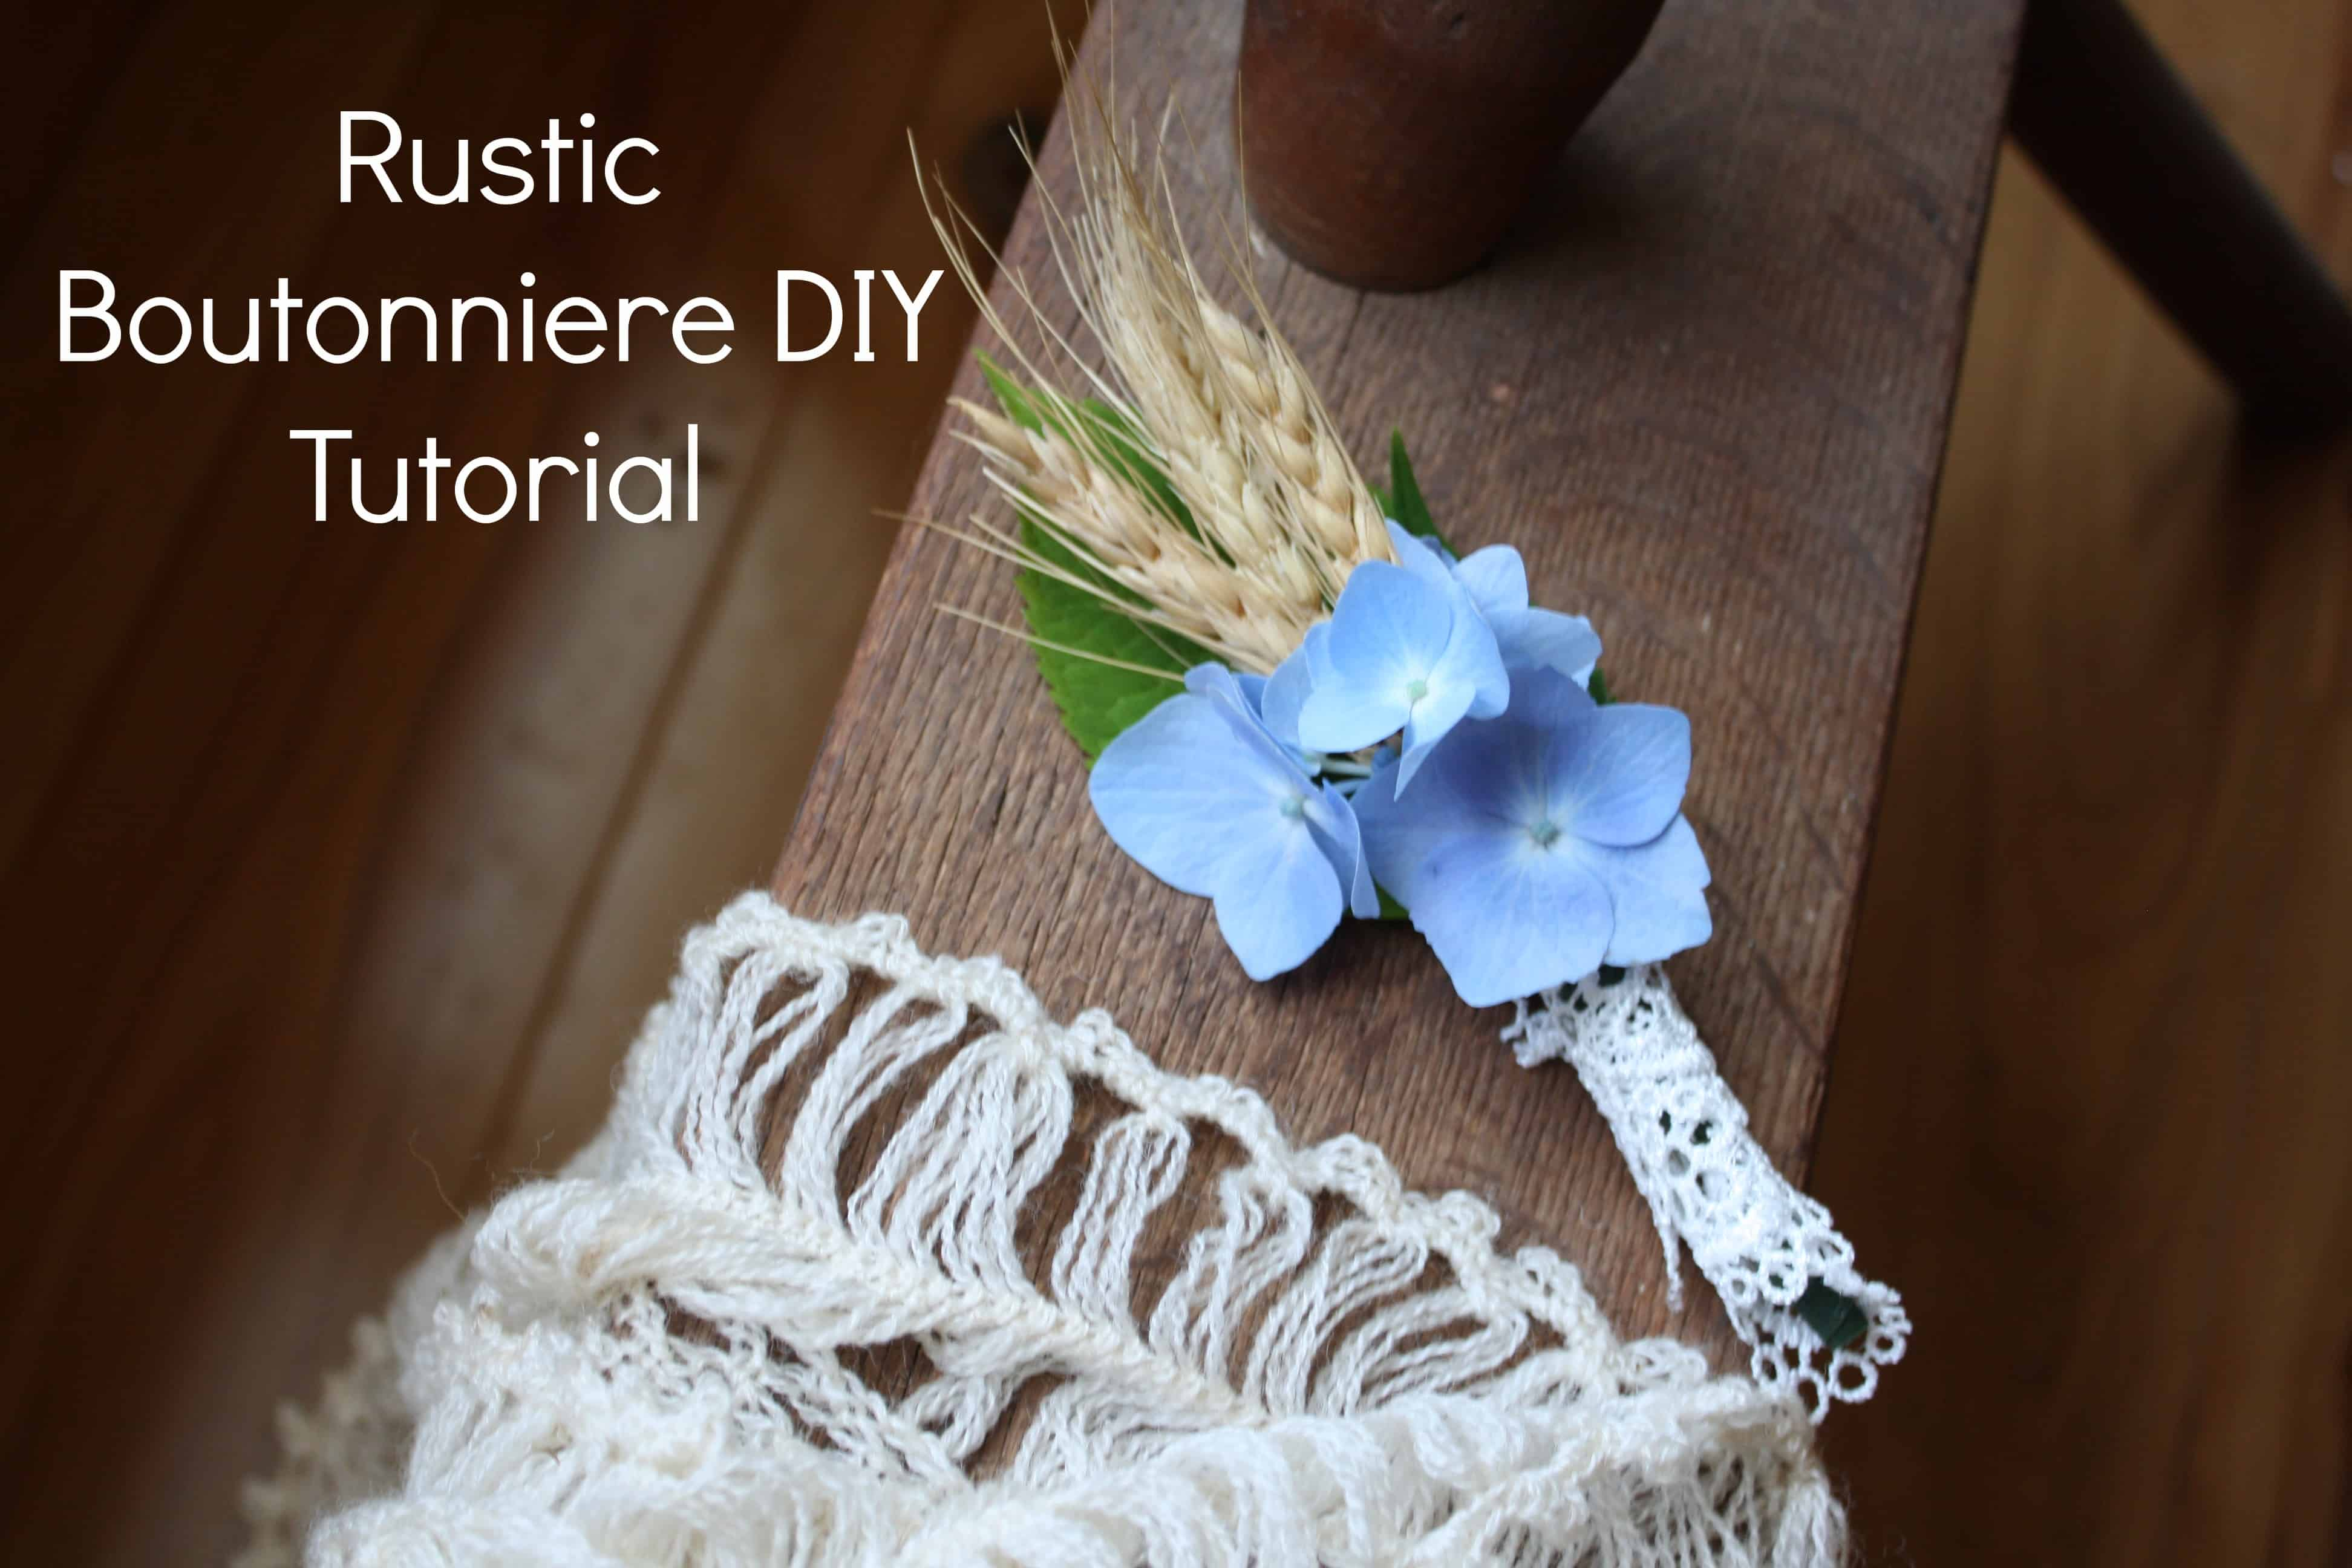 Rustic looking wheat and lace